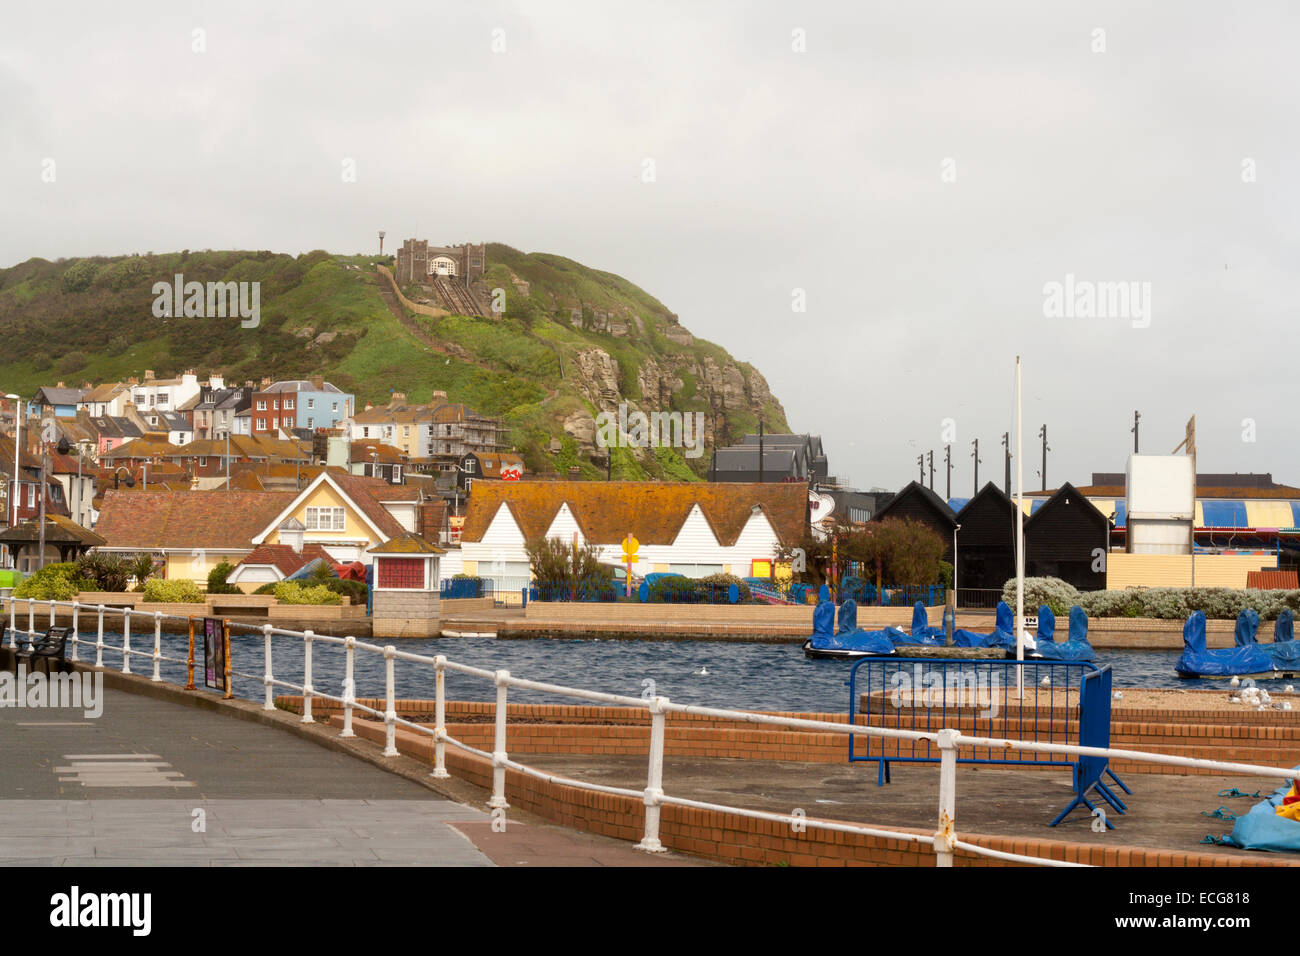 Hastings old town in east Sussex with vernacular railway scaling the cliff - Stock Image